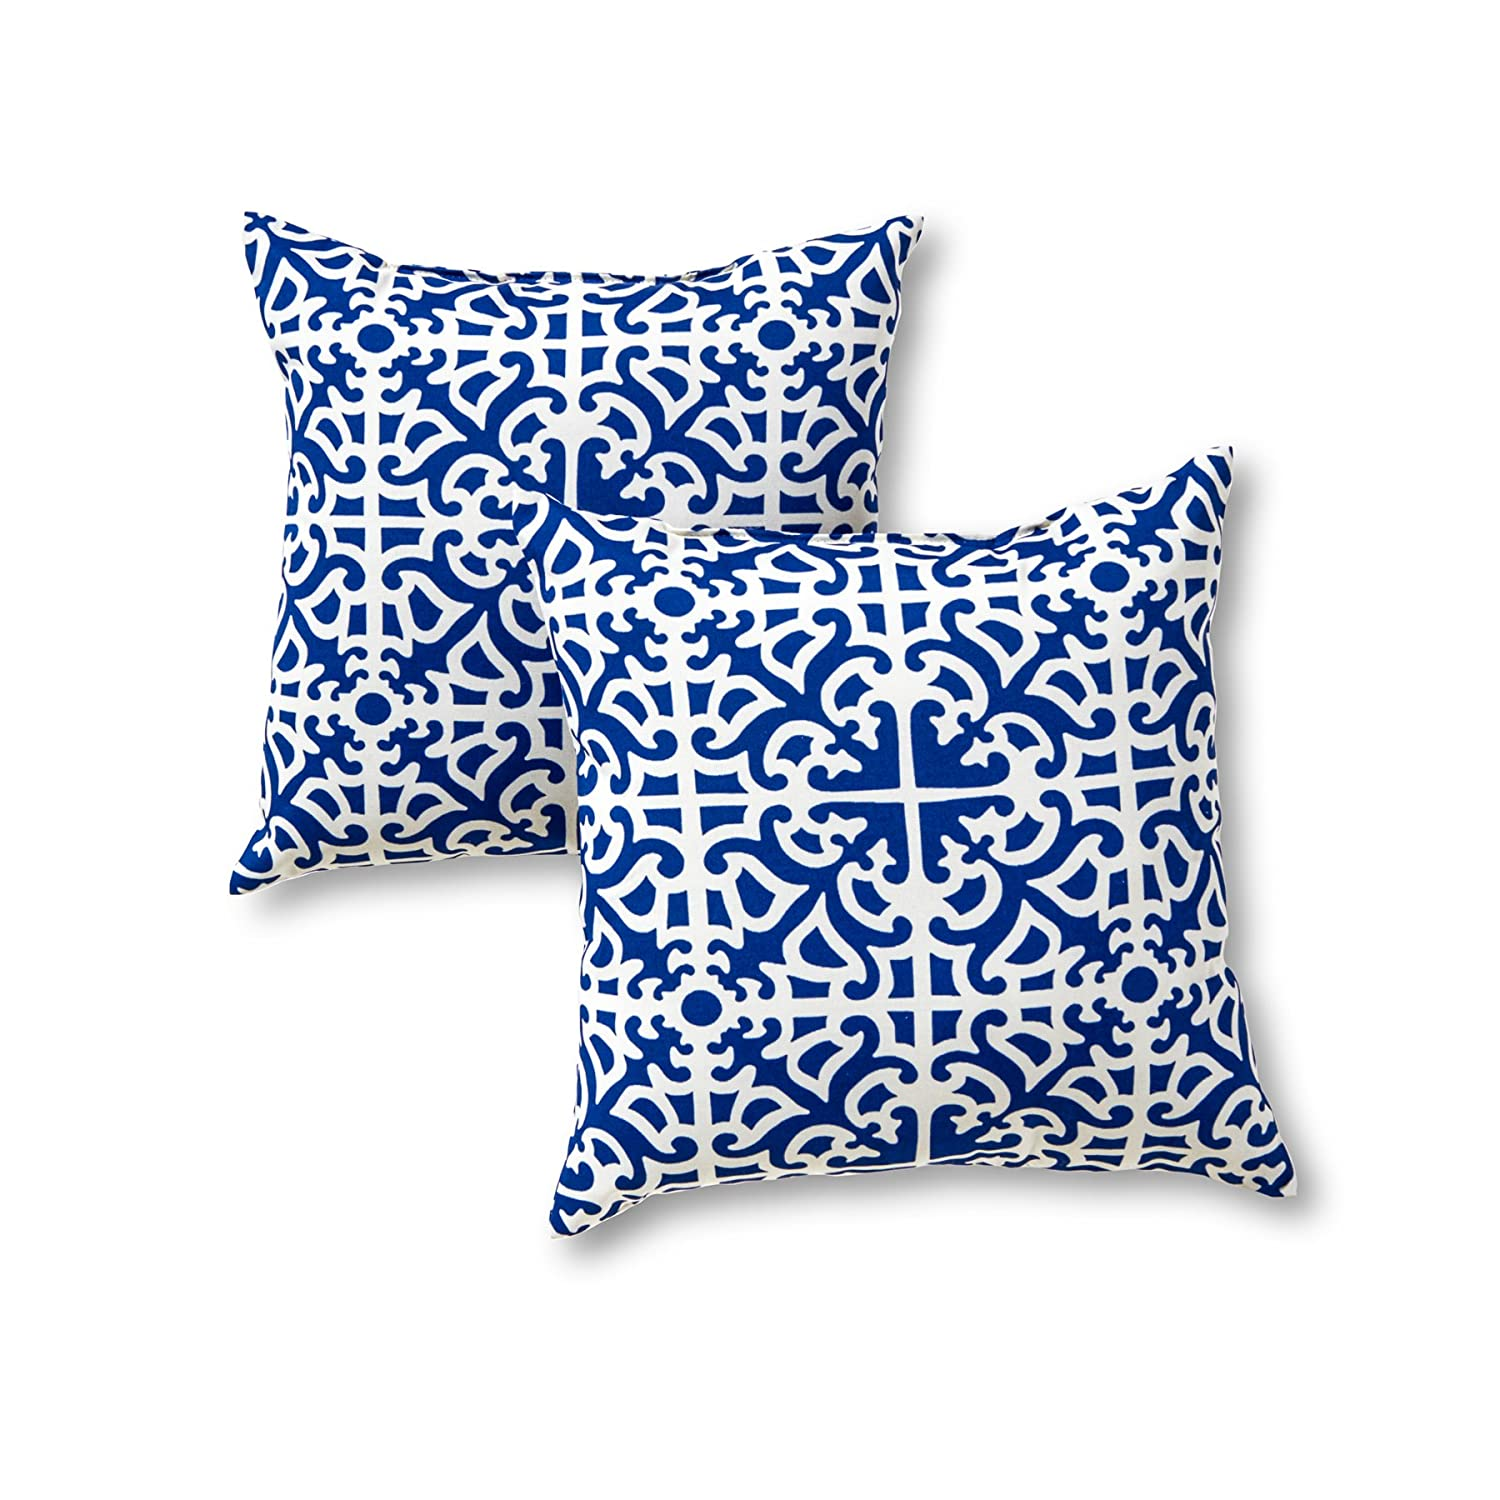 Indoor Outdoor Decorative Pillows : Home Indoor Outdoor Accent Pillows Decorative Designer Decorator Set of 2 New eBay